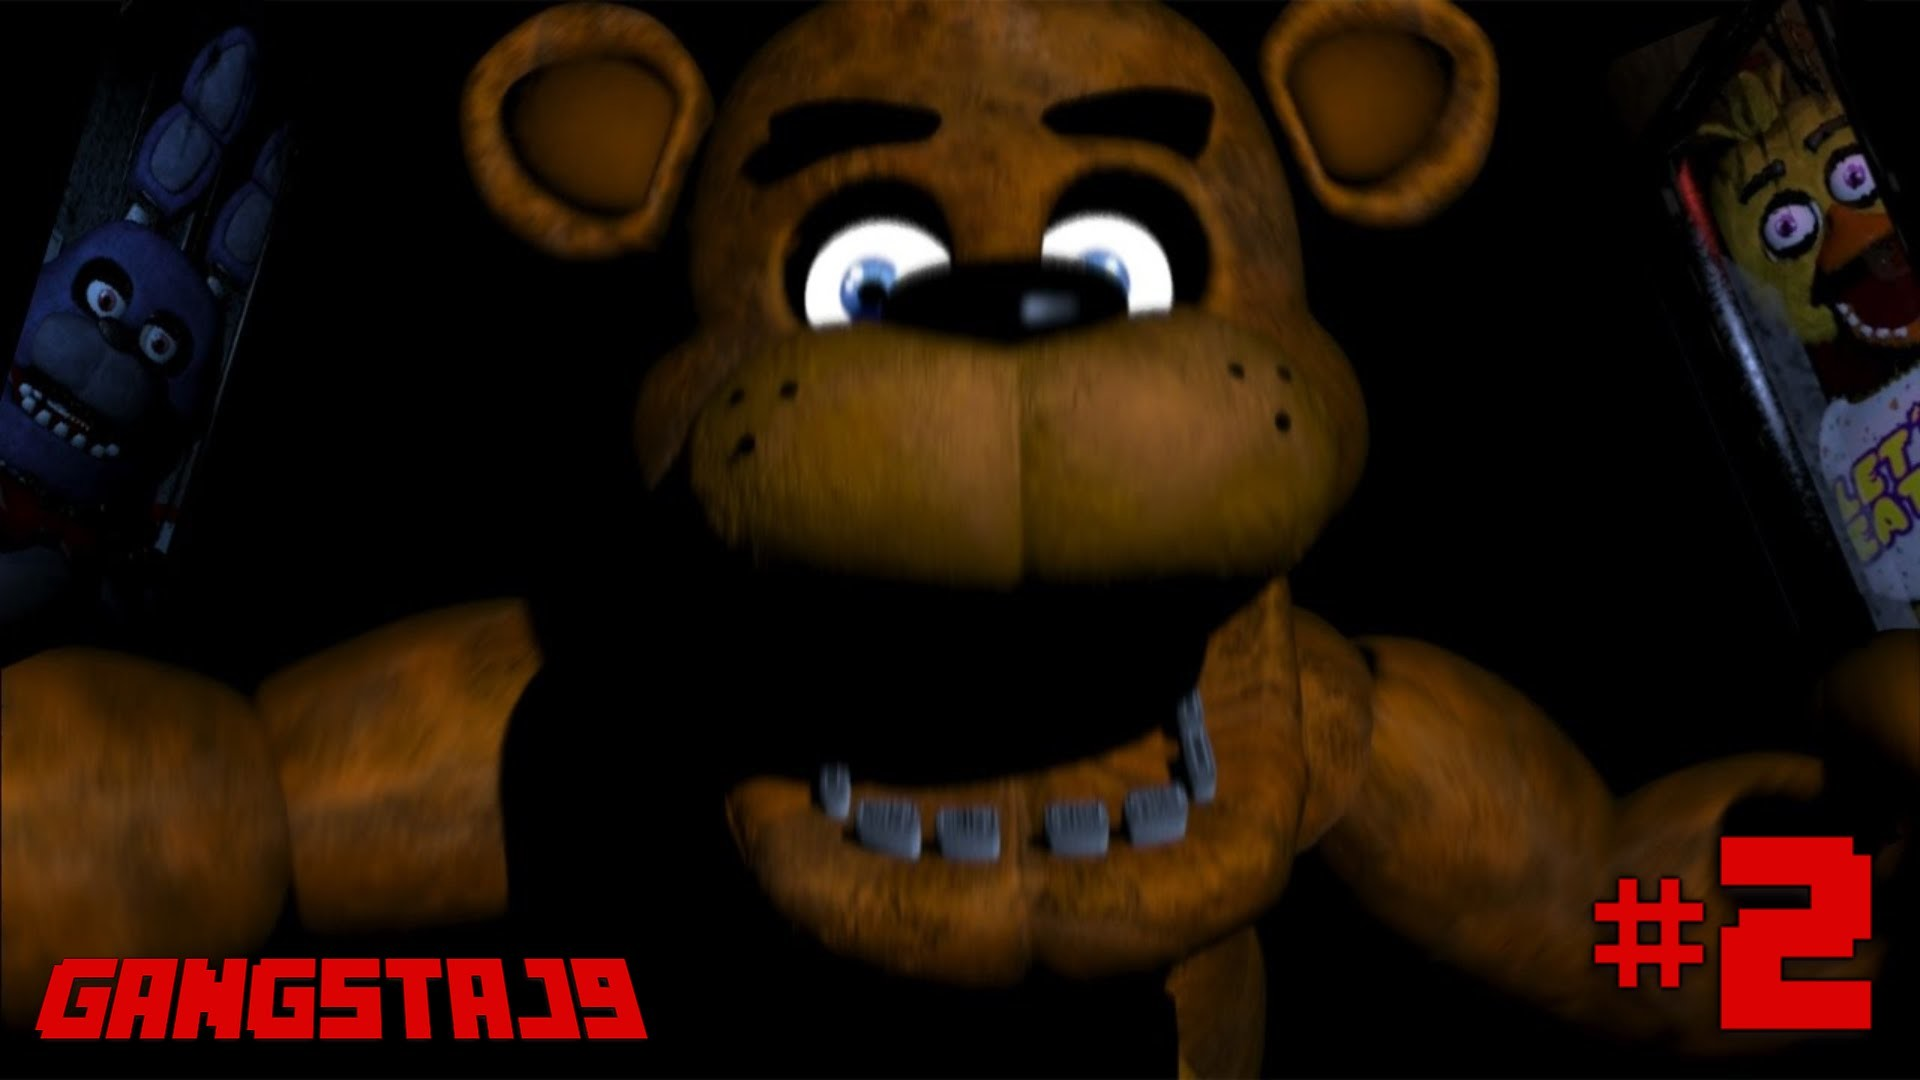 1920x1080 Five Nights at Freddy's #2 - FREDDY DOESN'T MOVE?!